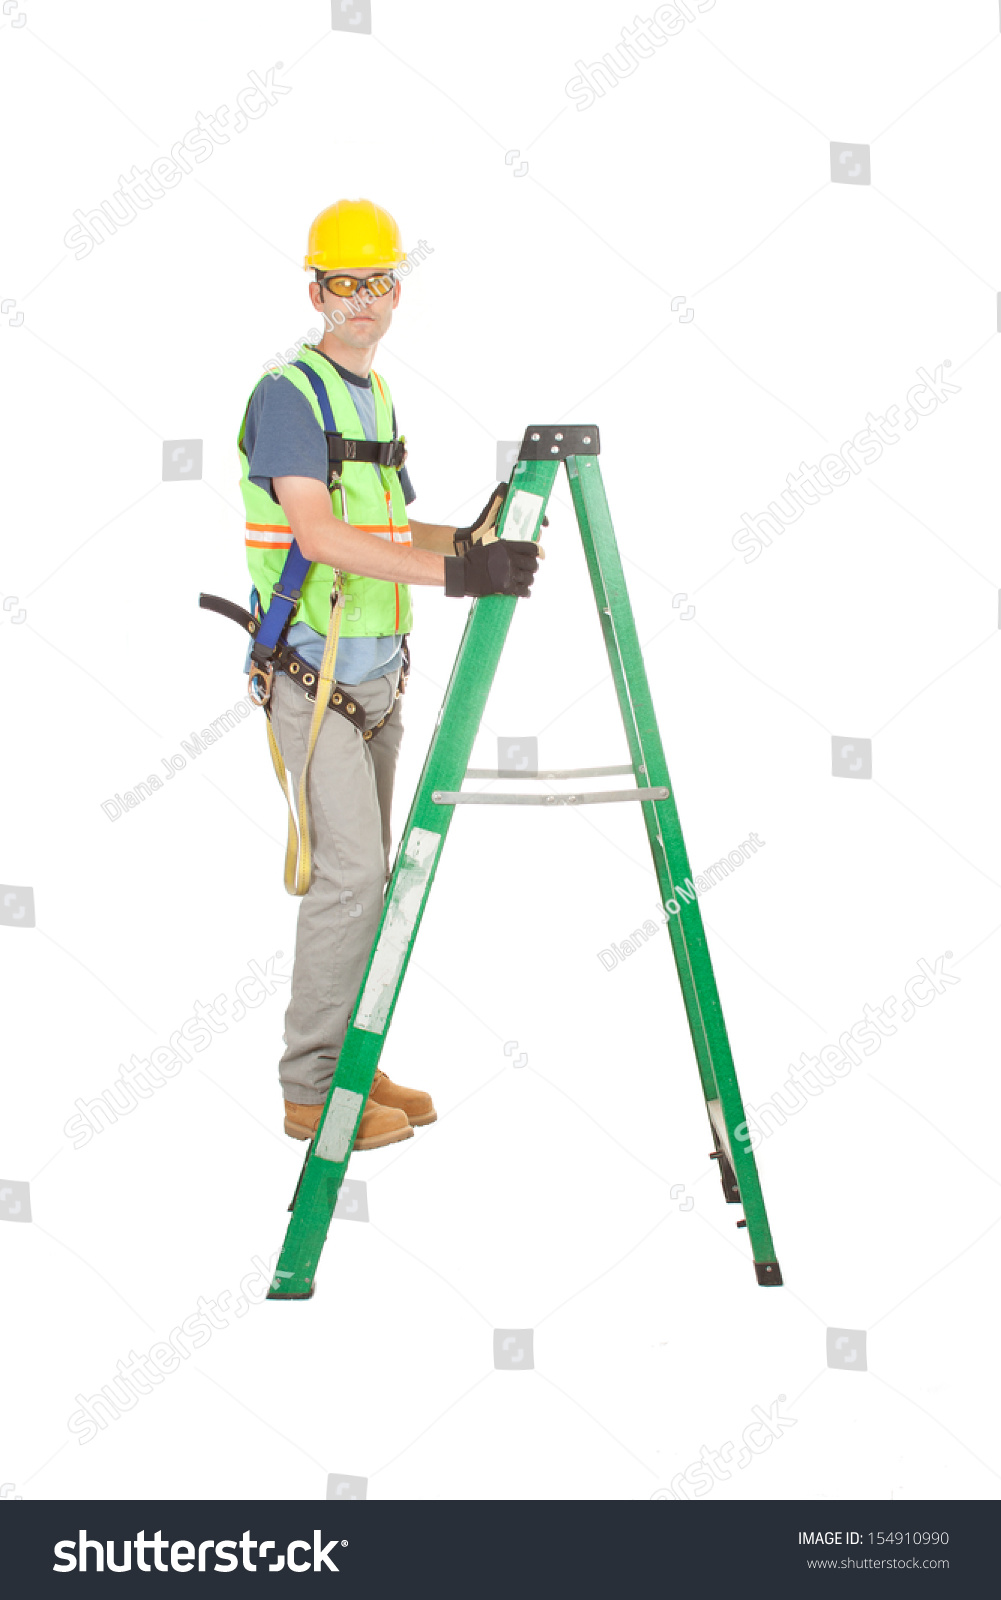 Construction Worker Full Safety Kit Climbs Stock Photo 154910990 ... for Worker Climbing Ladder  150ifm